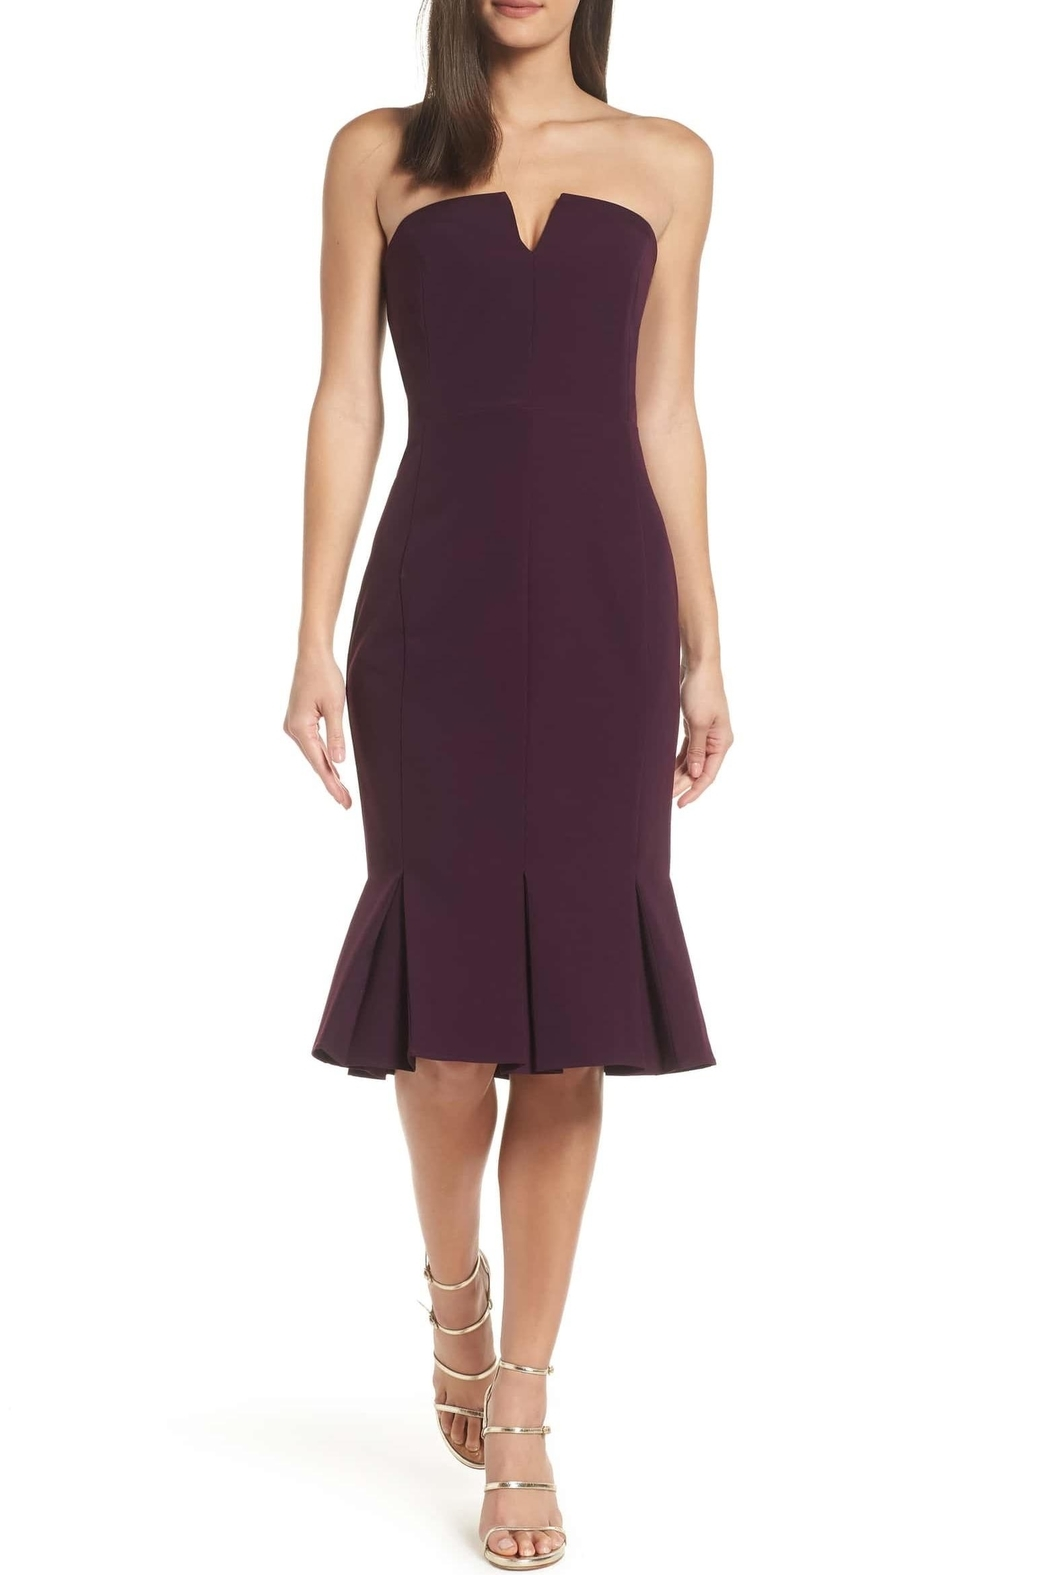 Adelyn Rae Alexis Woven Strapless Dress - Main Image